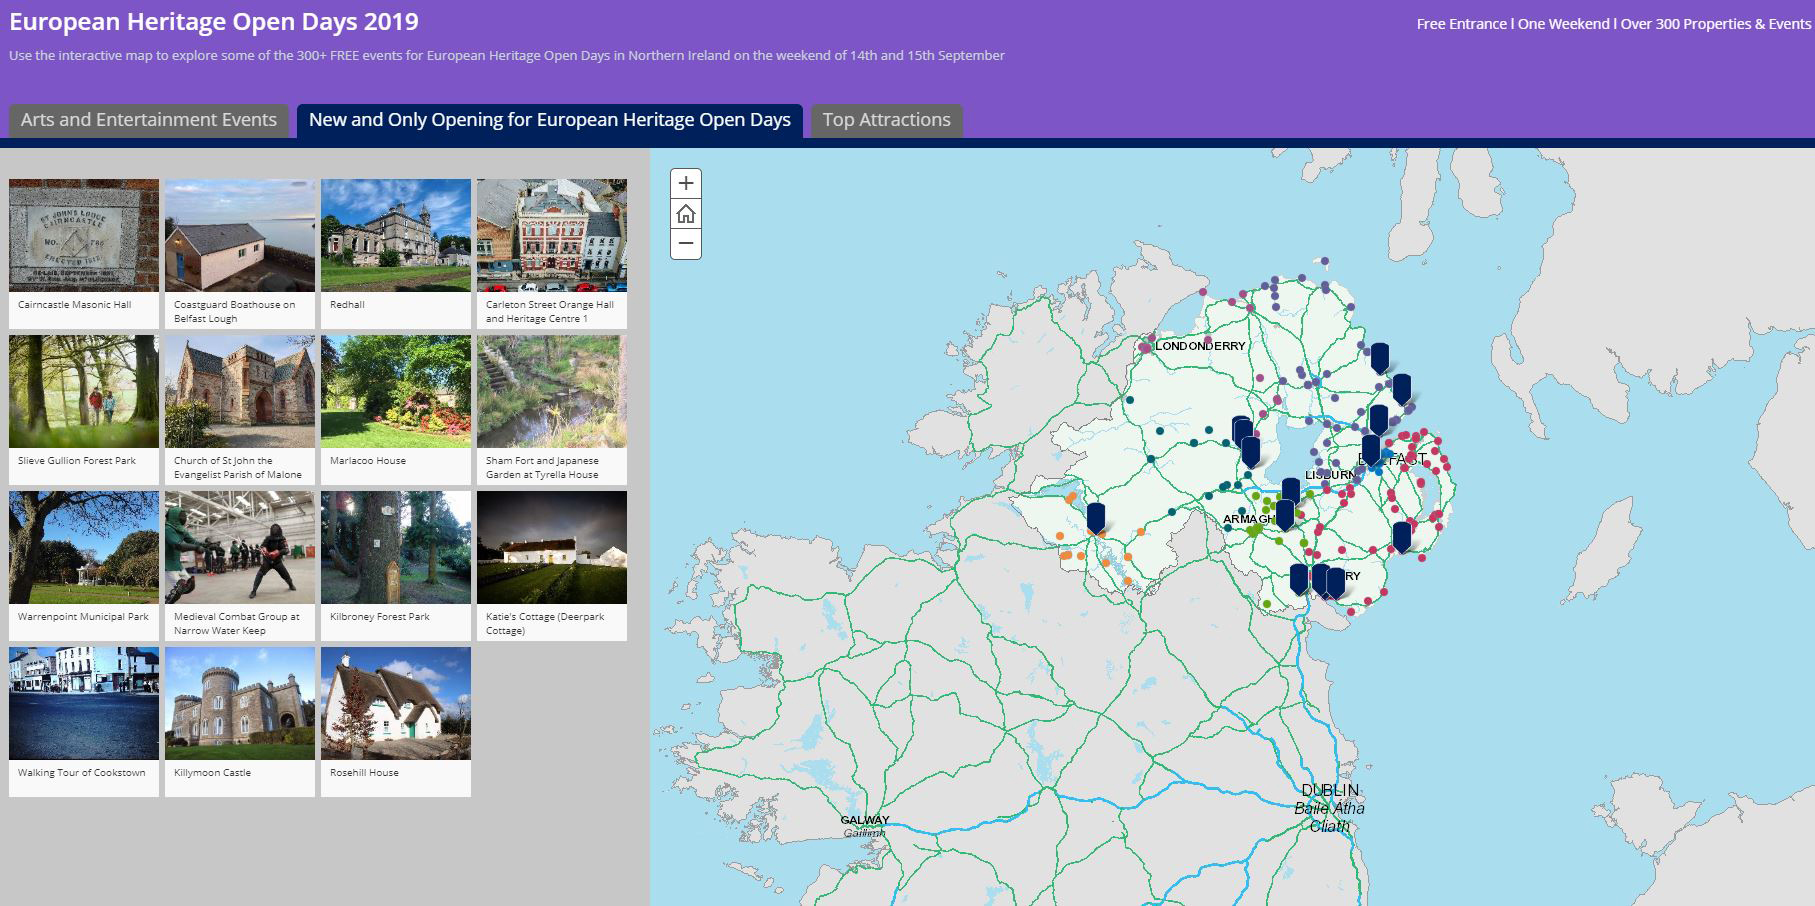 Digital map helps visitors uncover history at European ... on satellite map of ireland, interactive body map, parks of ireland, glossary of ireland, map of western ireland, county map of ireland, blank map of ireland, statistics of ireland, interactive map united kingdom, overview of ireland, location on map of ireland, site map of ireland, production map of ireland, simple map of ireland, entertainment of ireland, road map of ireland, resources of ireland, restaurants of ireland, big map of ireland, interactive map switzerland,